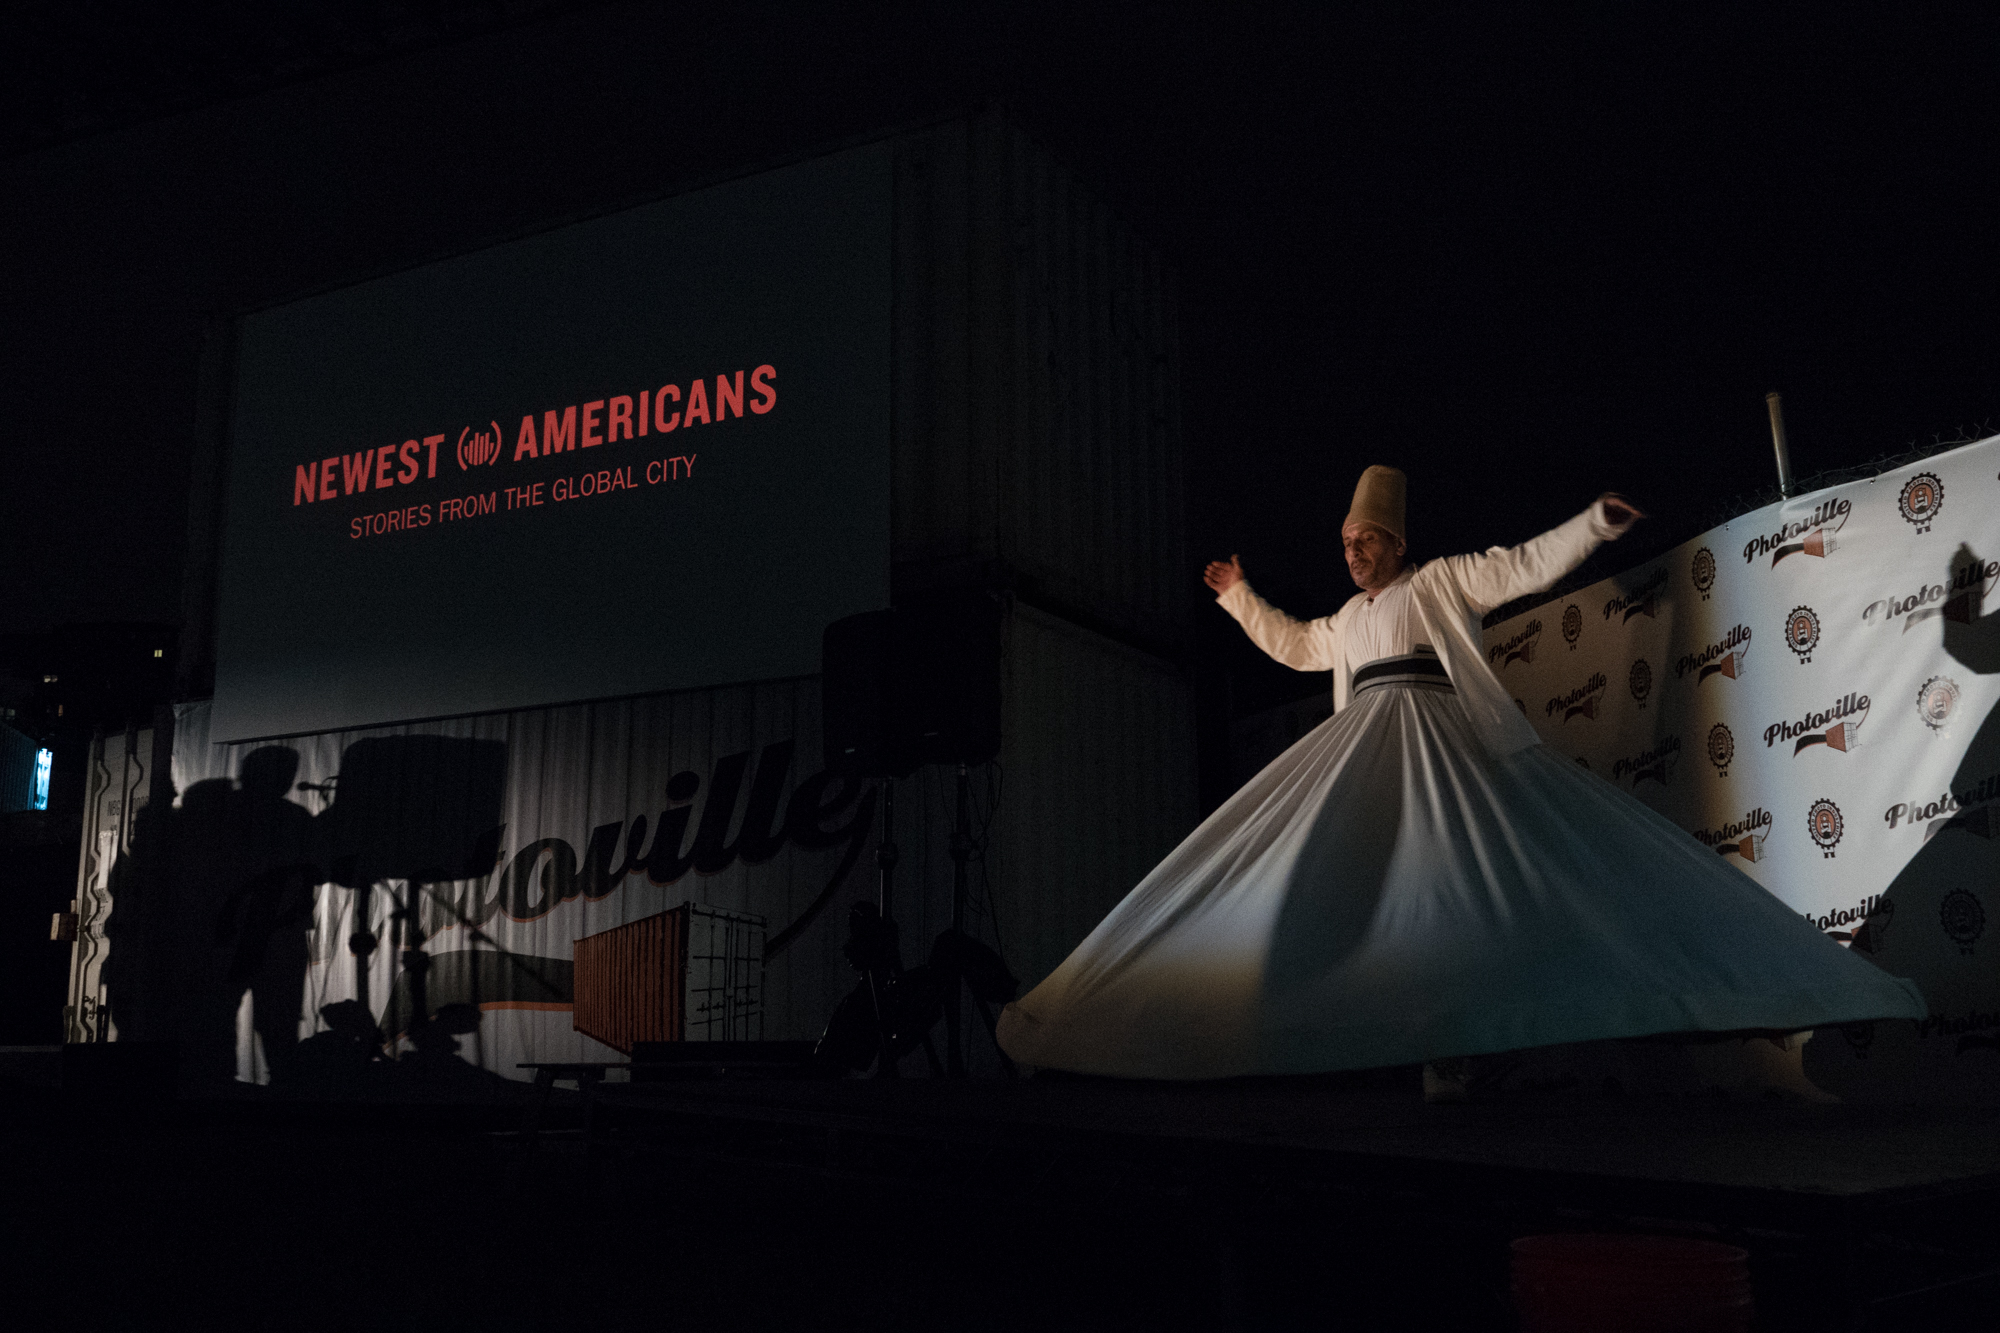 A whirling dervish spins to traditional Syrian music at the end of Newest Americans' Opening Night presentation at Photoville 2017. (Photo by Stephanie Khoury)